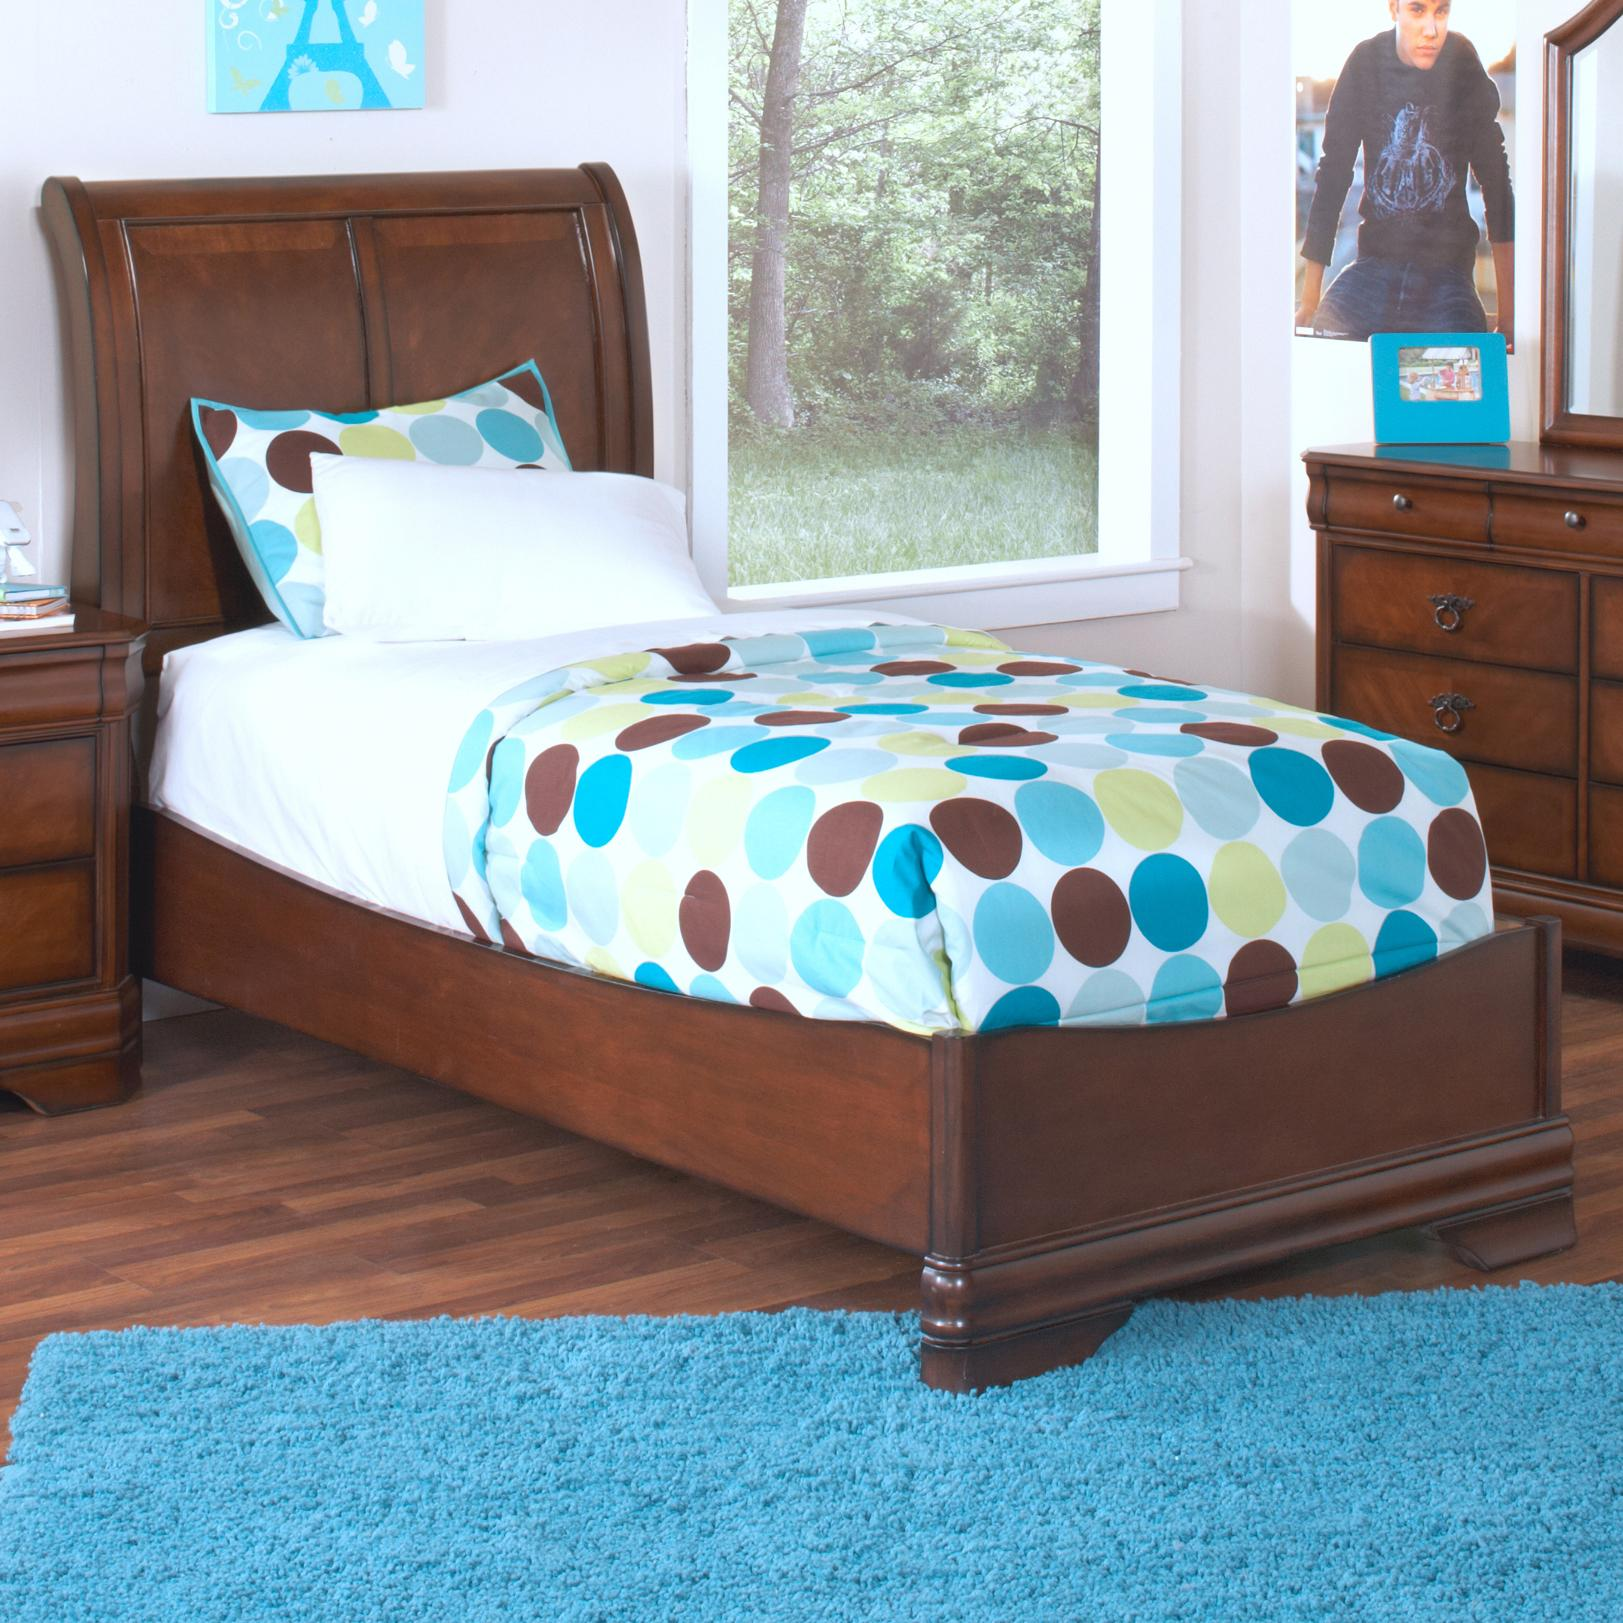 New Classic Sheridan Twin Youth Panel Bed - Item Number: 05-005-510+520+530